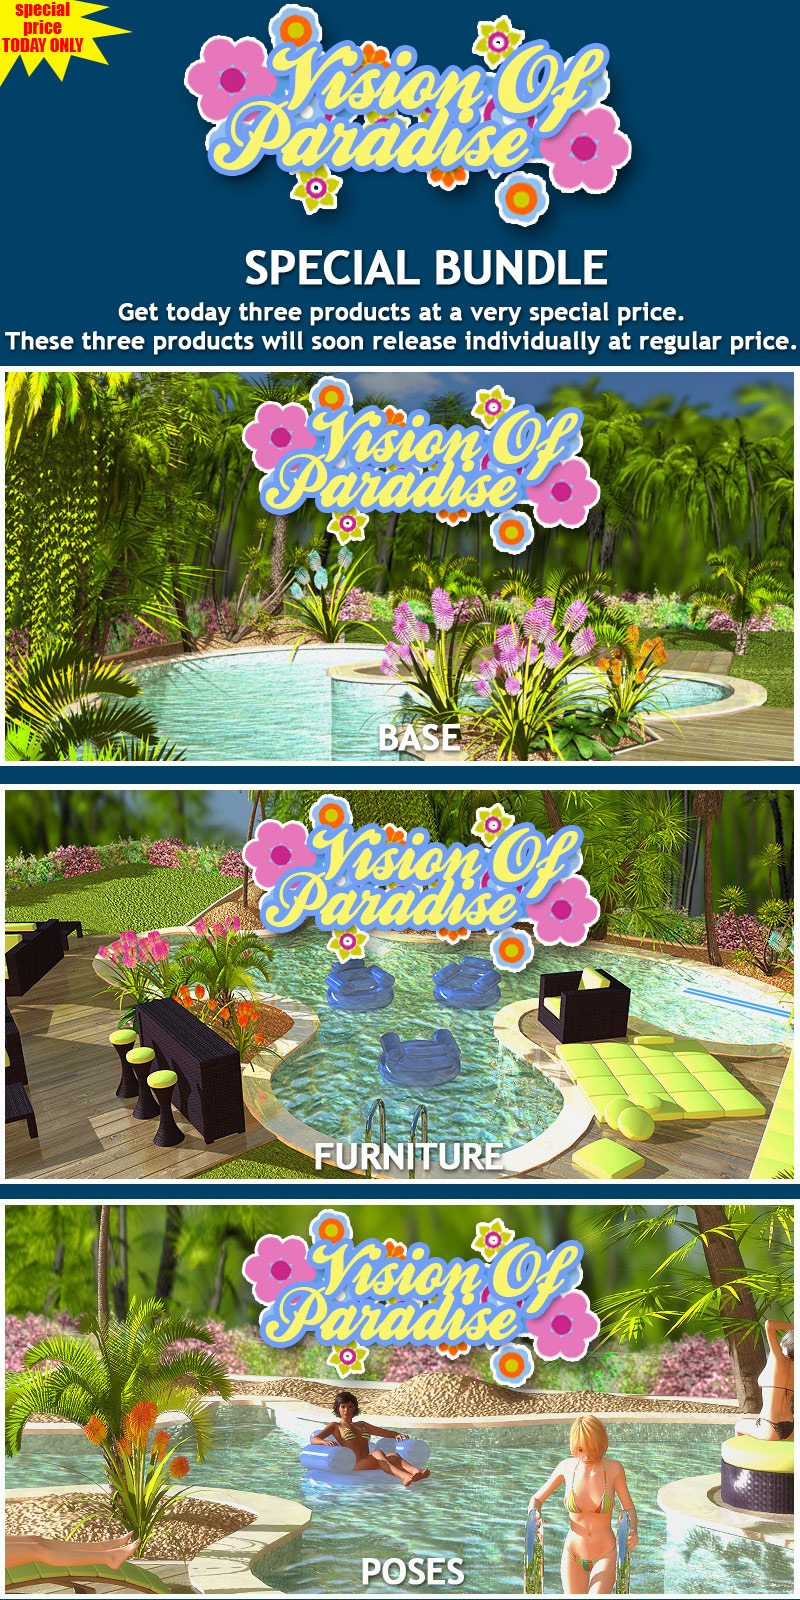 Vision Of Paradise BUNDLE